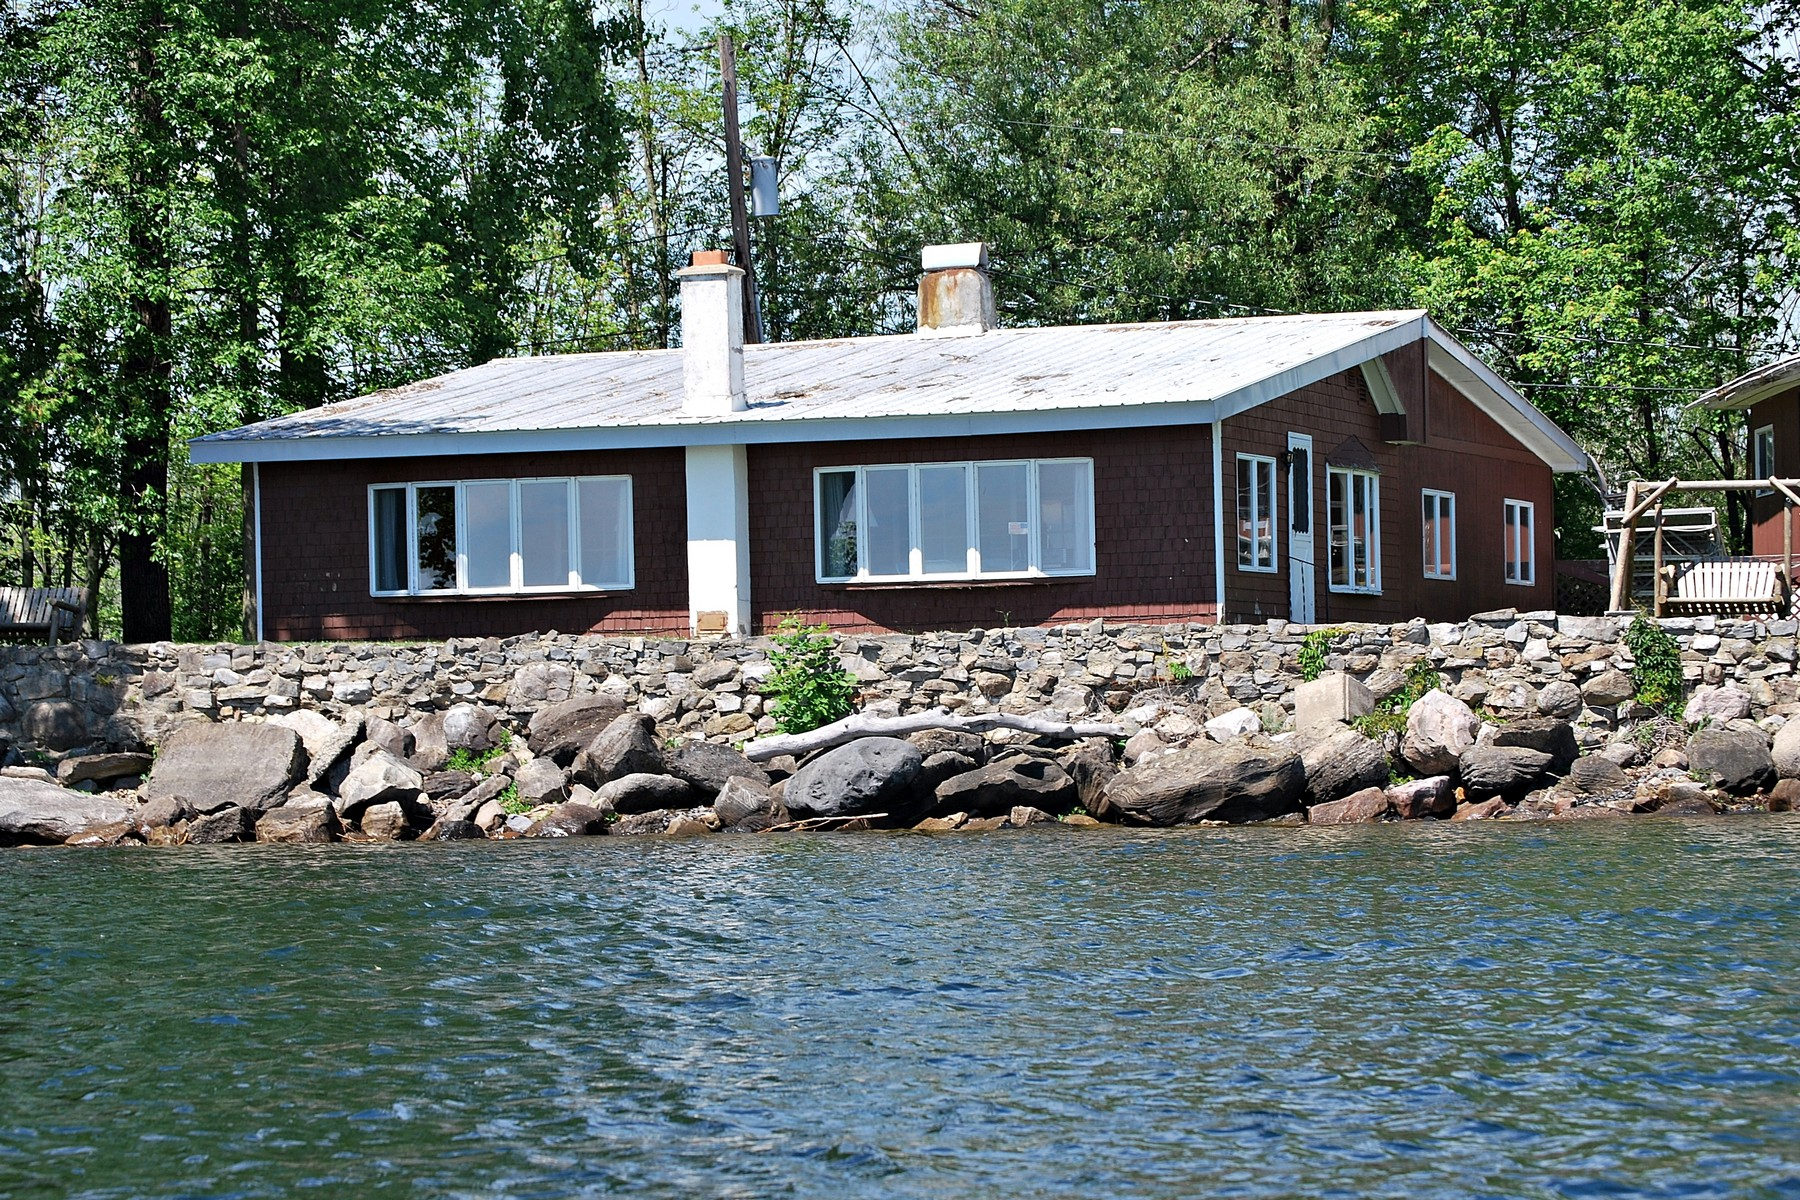 Single Family Home for Sale at Lake Champlain Cottages 111 Stony Point Rd Champlain, New York 12919 United States